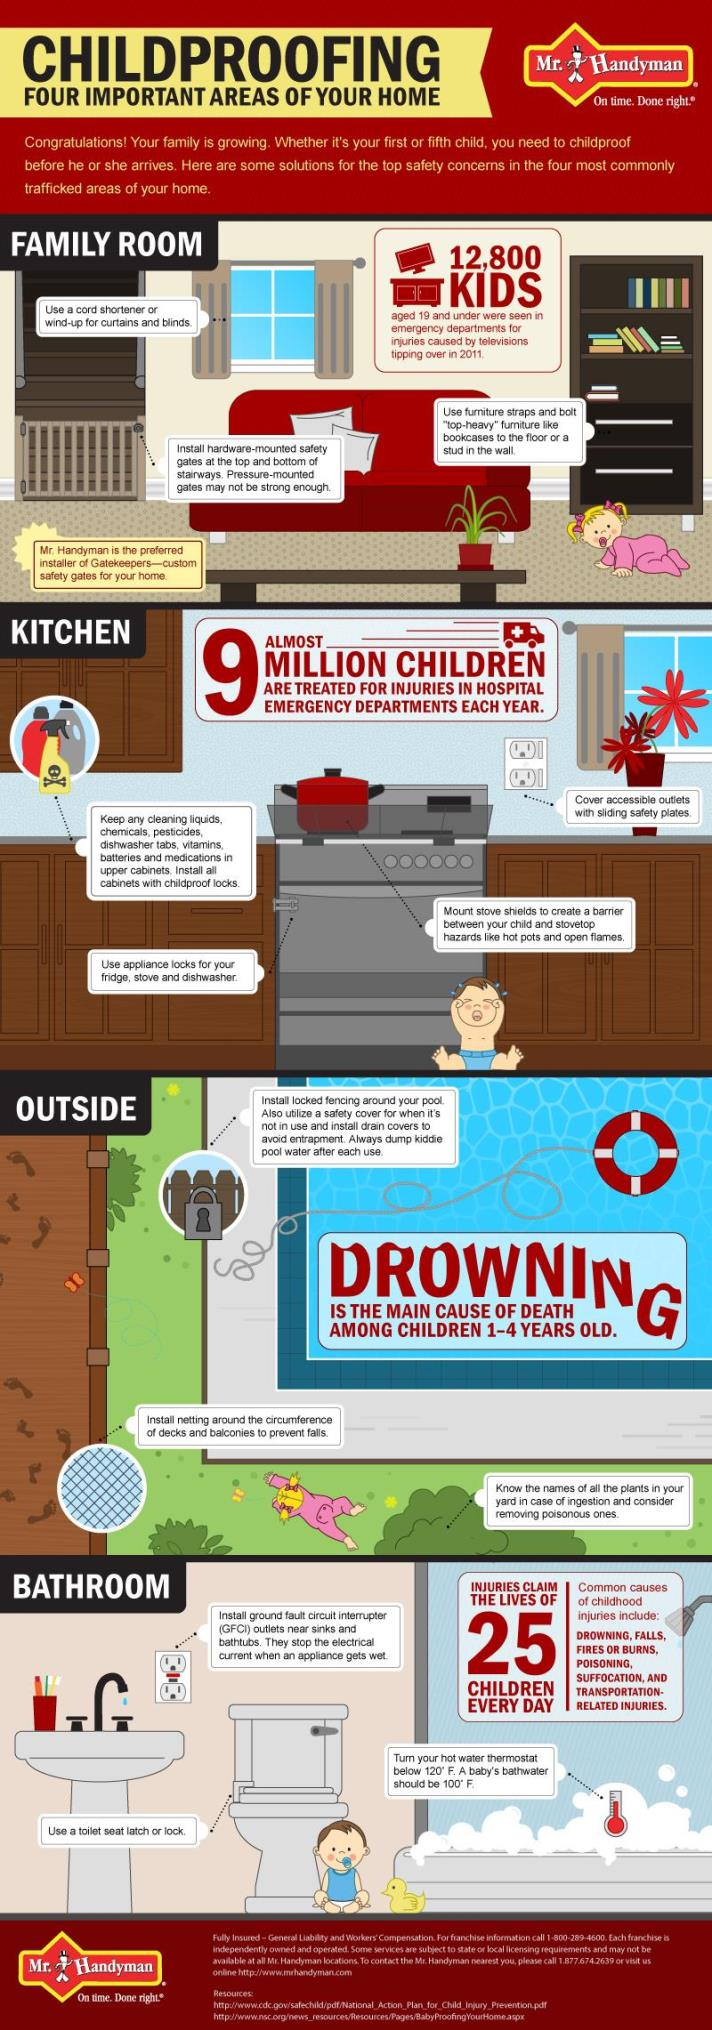 Childproofing your home infographic